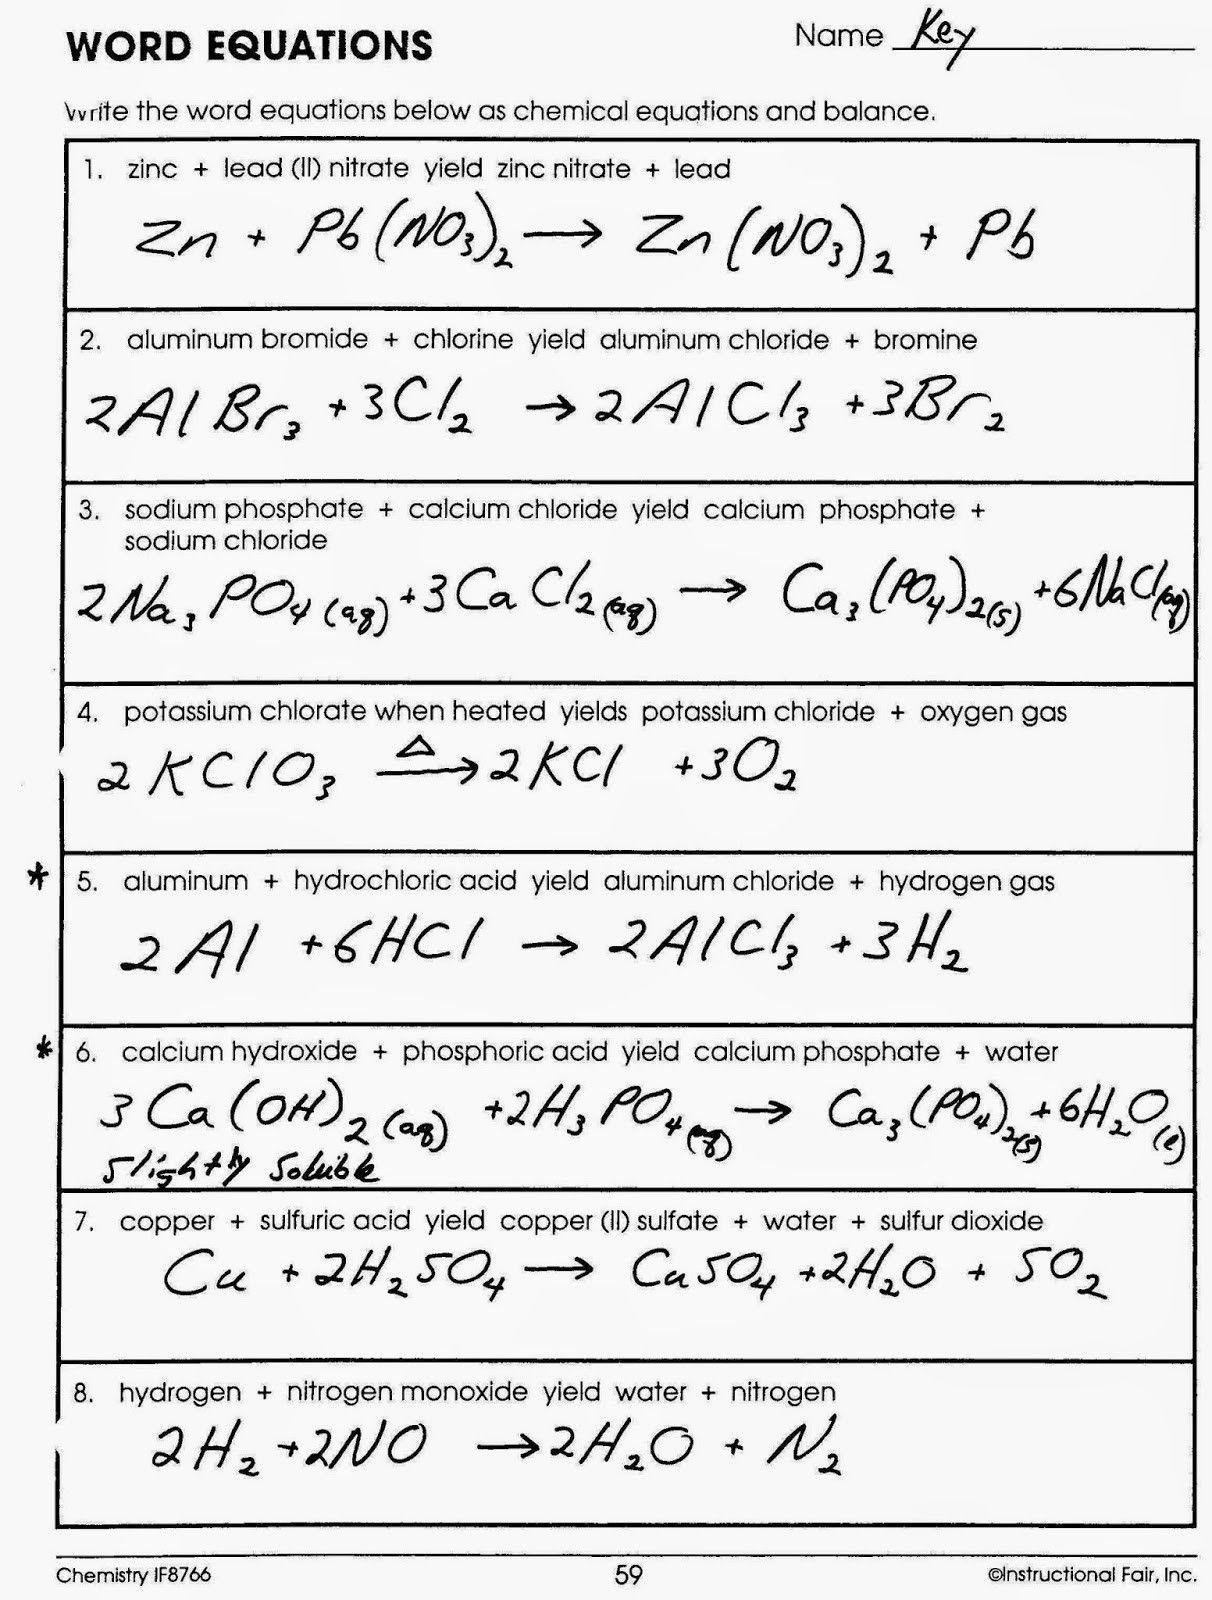 Balancing Chemical Equations Worksheet Word